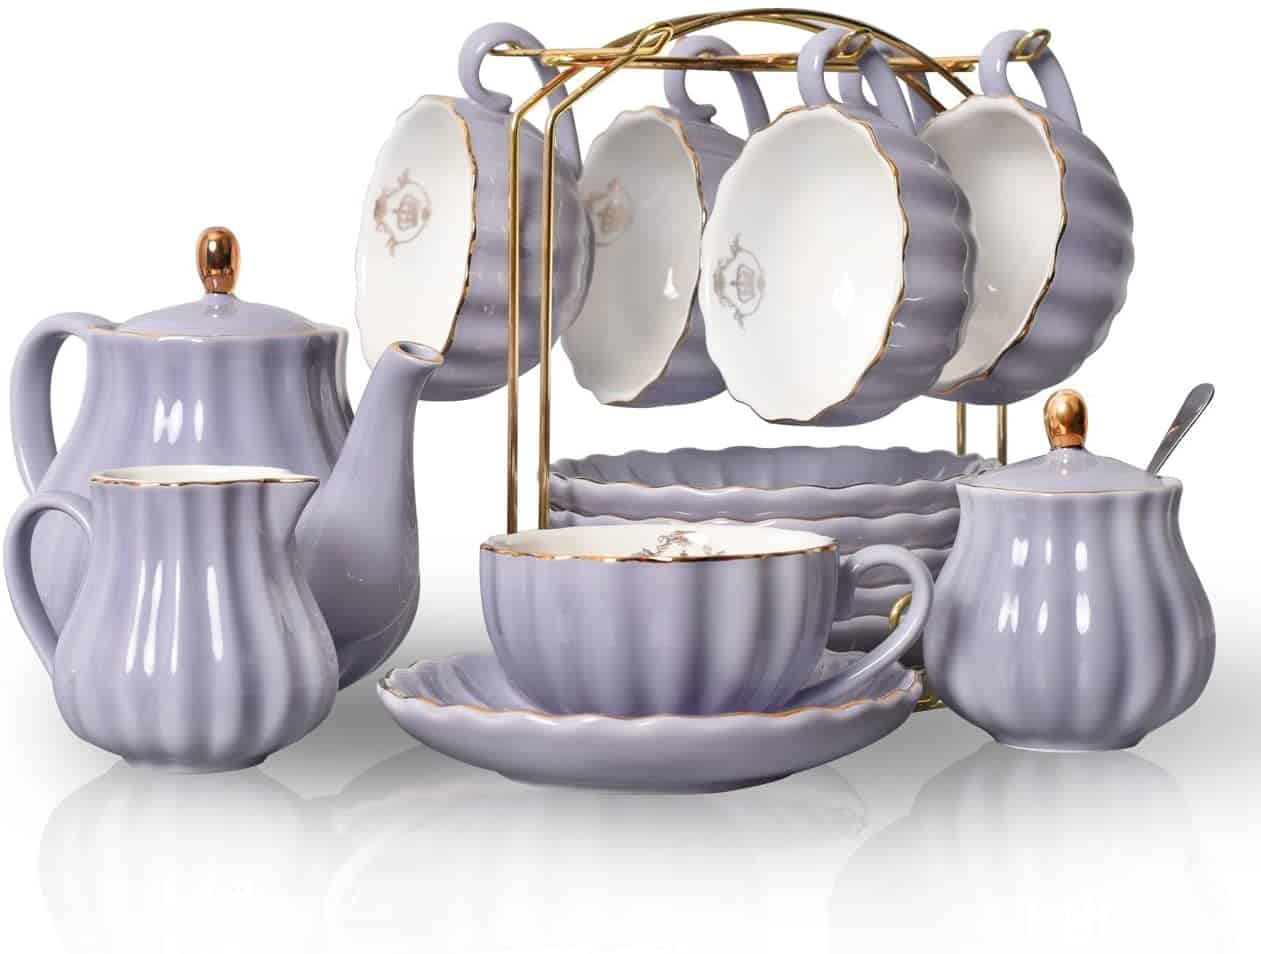 Pukka Home Porcelain Sets British Royal Series